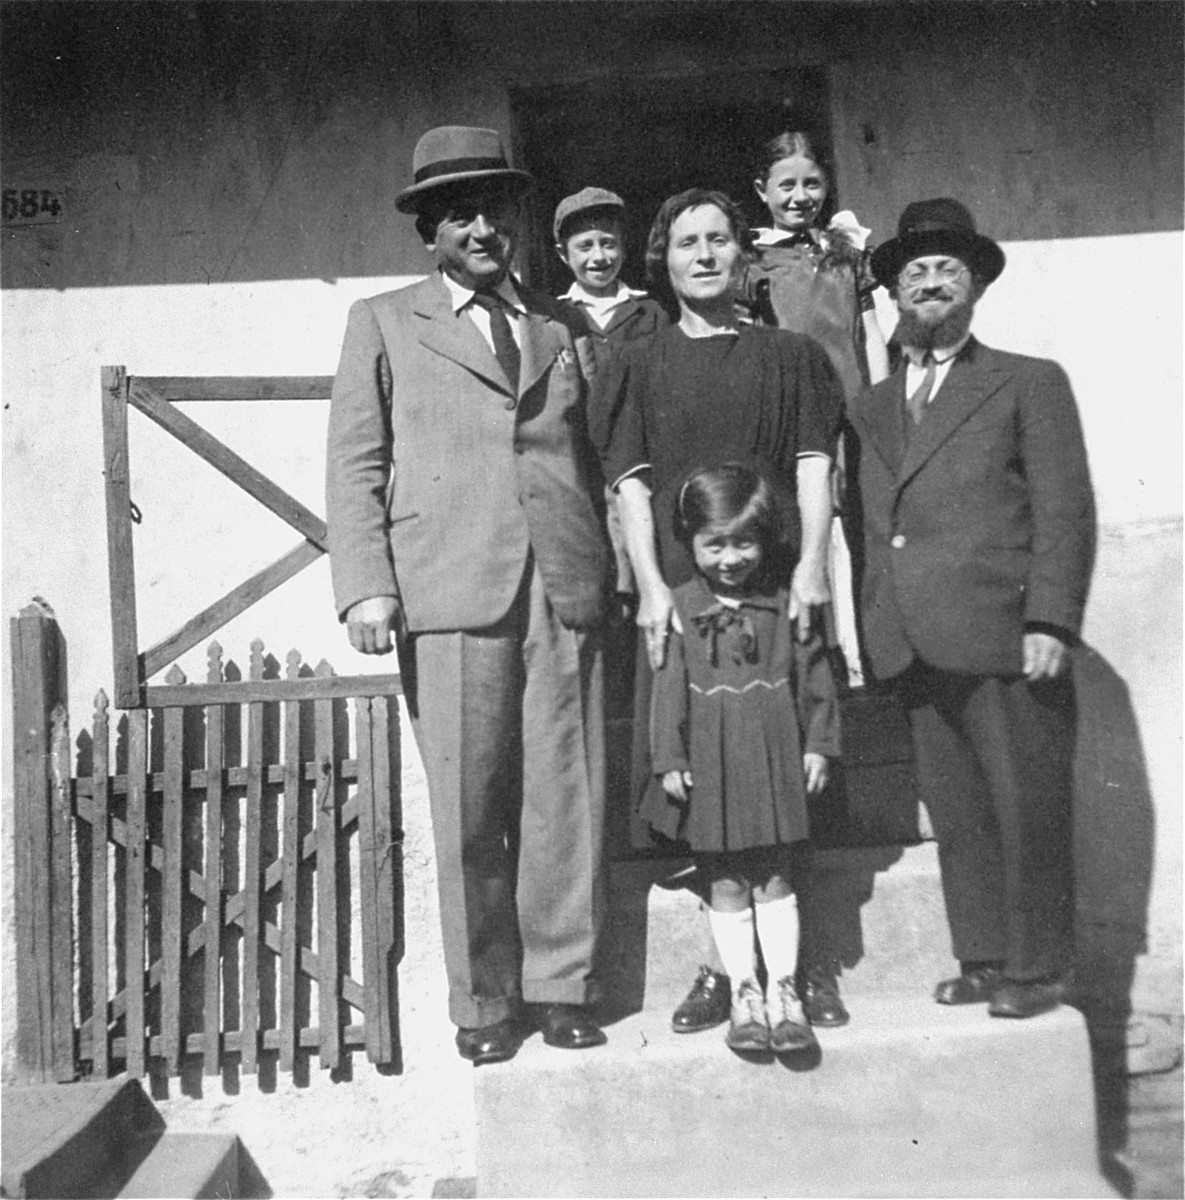 Portrait of the extended Kohn family in Kosice, Slovakia.   Pictured on the bottom step (from left to right) are: Adolph Englander, his sister Marishka Kohn, and her husband.  Marishka's daughter, Gitl Mindl, is standing in front of her.  Standing behind in the back row are Pinchas and his older sister, Dvora Bluma.  Pinchas Kohn was the son of Maryshka (Englander) Kohn and the cousin of donor Doreen Koretz.  The Kohn family was deported to Auschwitz in the spring of 1944 and killed on arrival.  Adolph and Ettela Englander, together with their two children, Ali and Magda, were also deported to Auschwitz in 1944.  Only Magda survived.